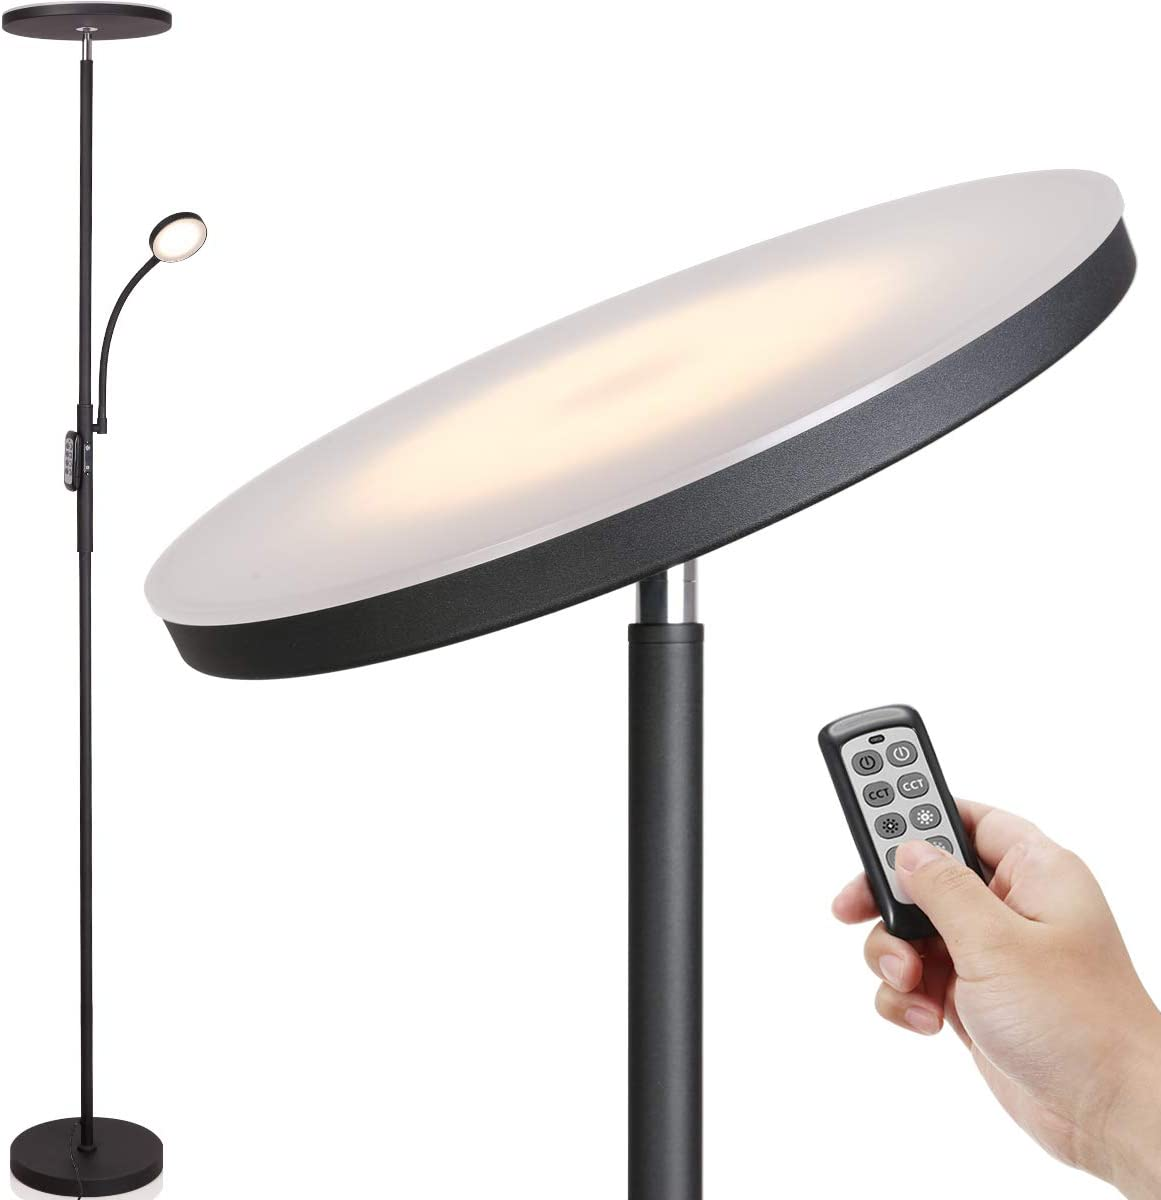 LED Floor Lamp - Soarz Torchiere Floor Lamp with Adjustable Reading Lamp,2000lumen Main Light and 400lumens Side Reading Light for Living Room, Bedroom, Office, Work with Remote Control (Matte Black)